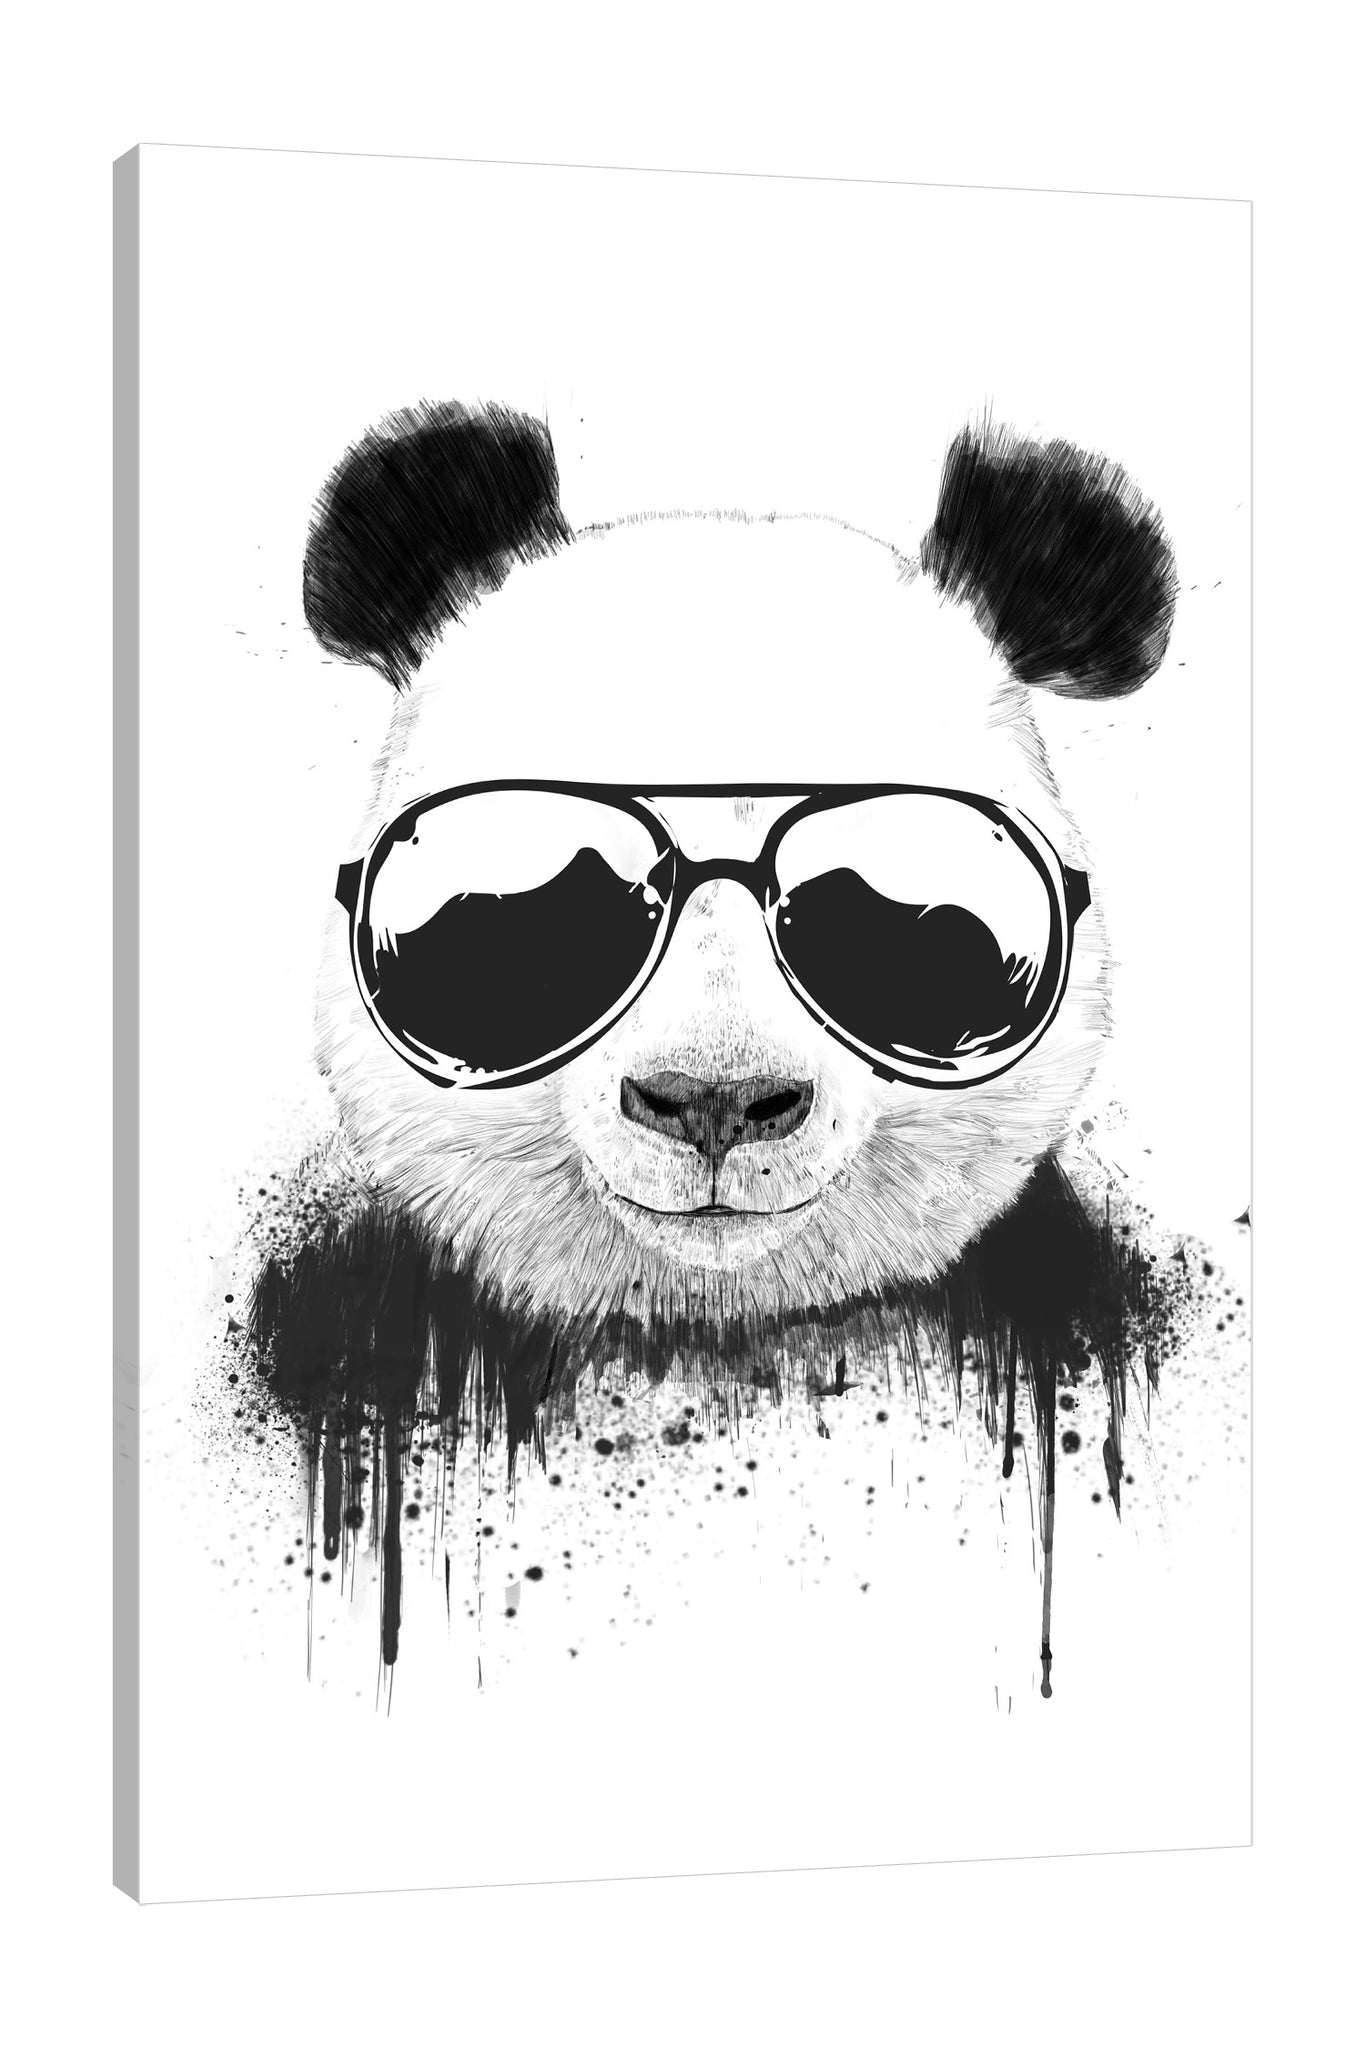 Balazs-Solti,Modern & Contemporary,Animals,Fashion,animals,animal,panda,pandas,shades,shade,paint drips,paint drip,drips,drip,sunglasses,sunglass,glasses,shades,shade,black and white,cool,Red,Mist Gray,Black,Coral Pink,White